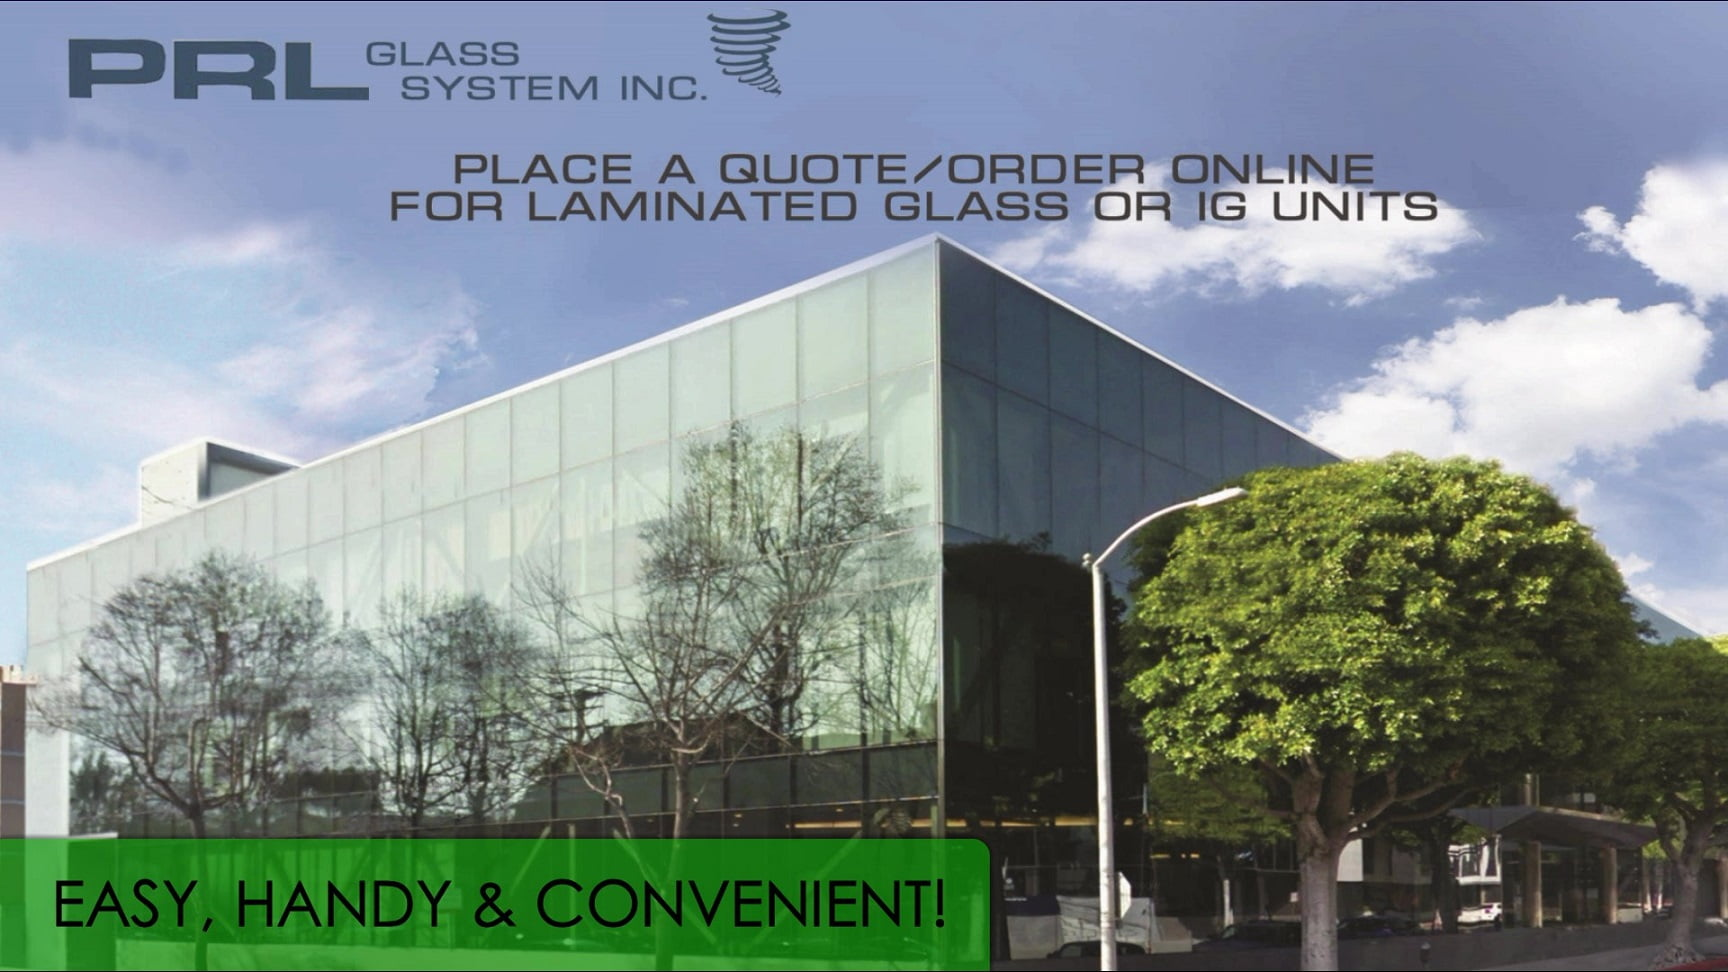 Order IG Units Or Laminated Glass Online Video